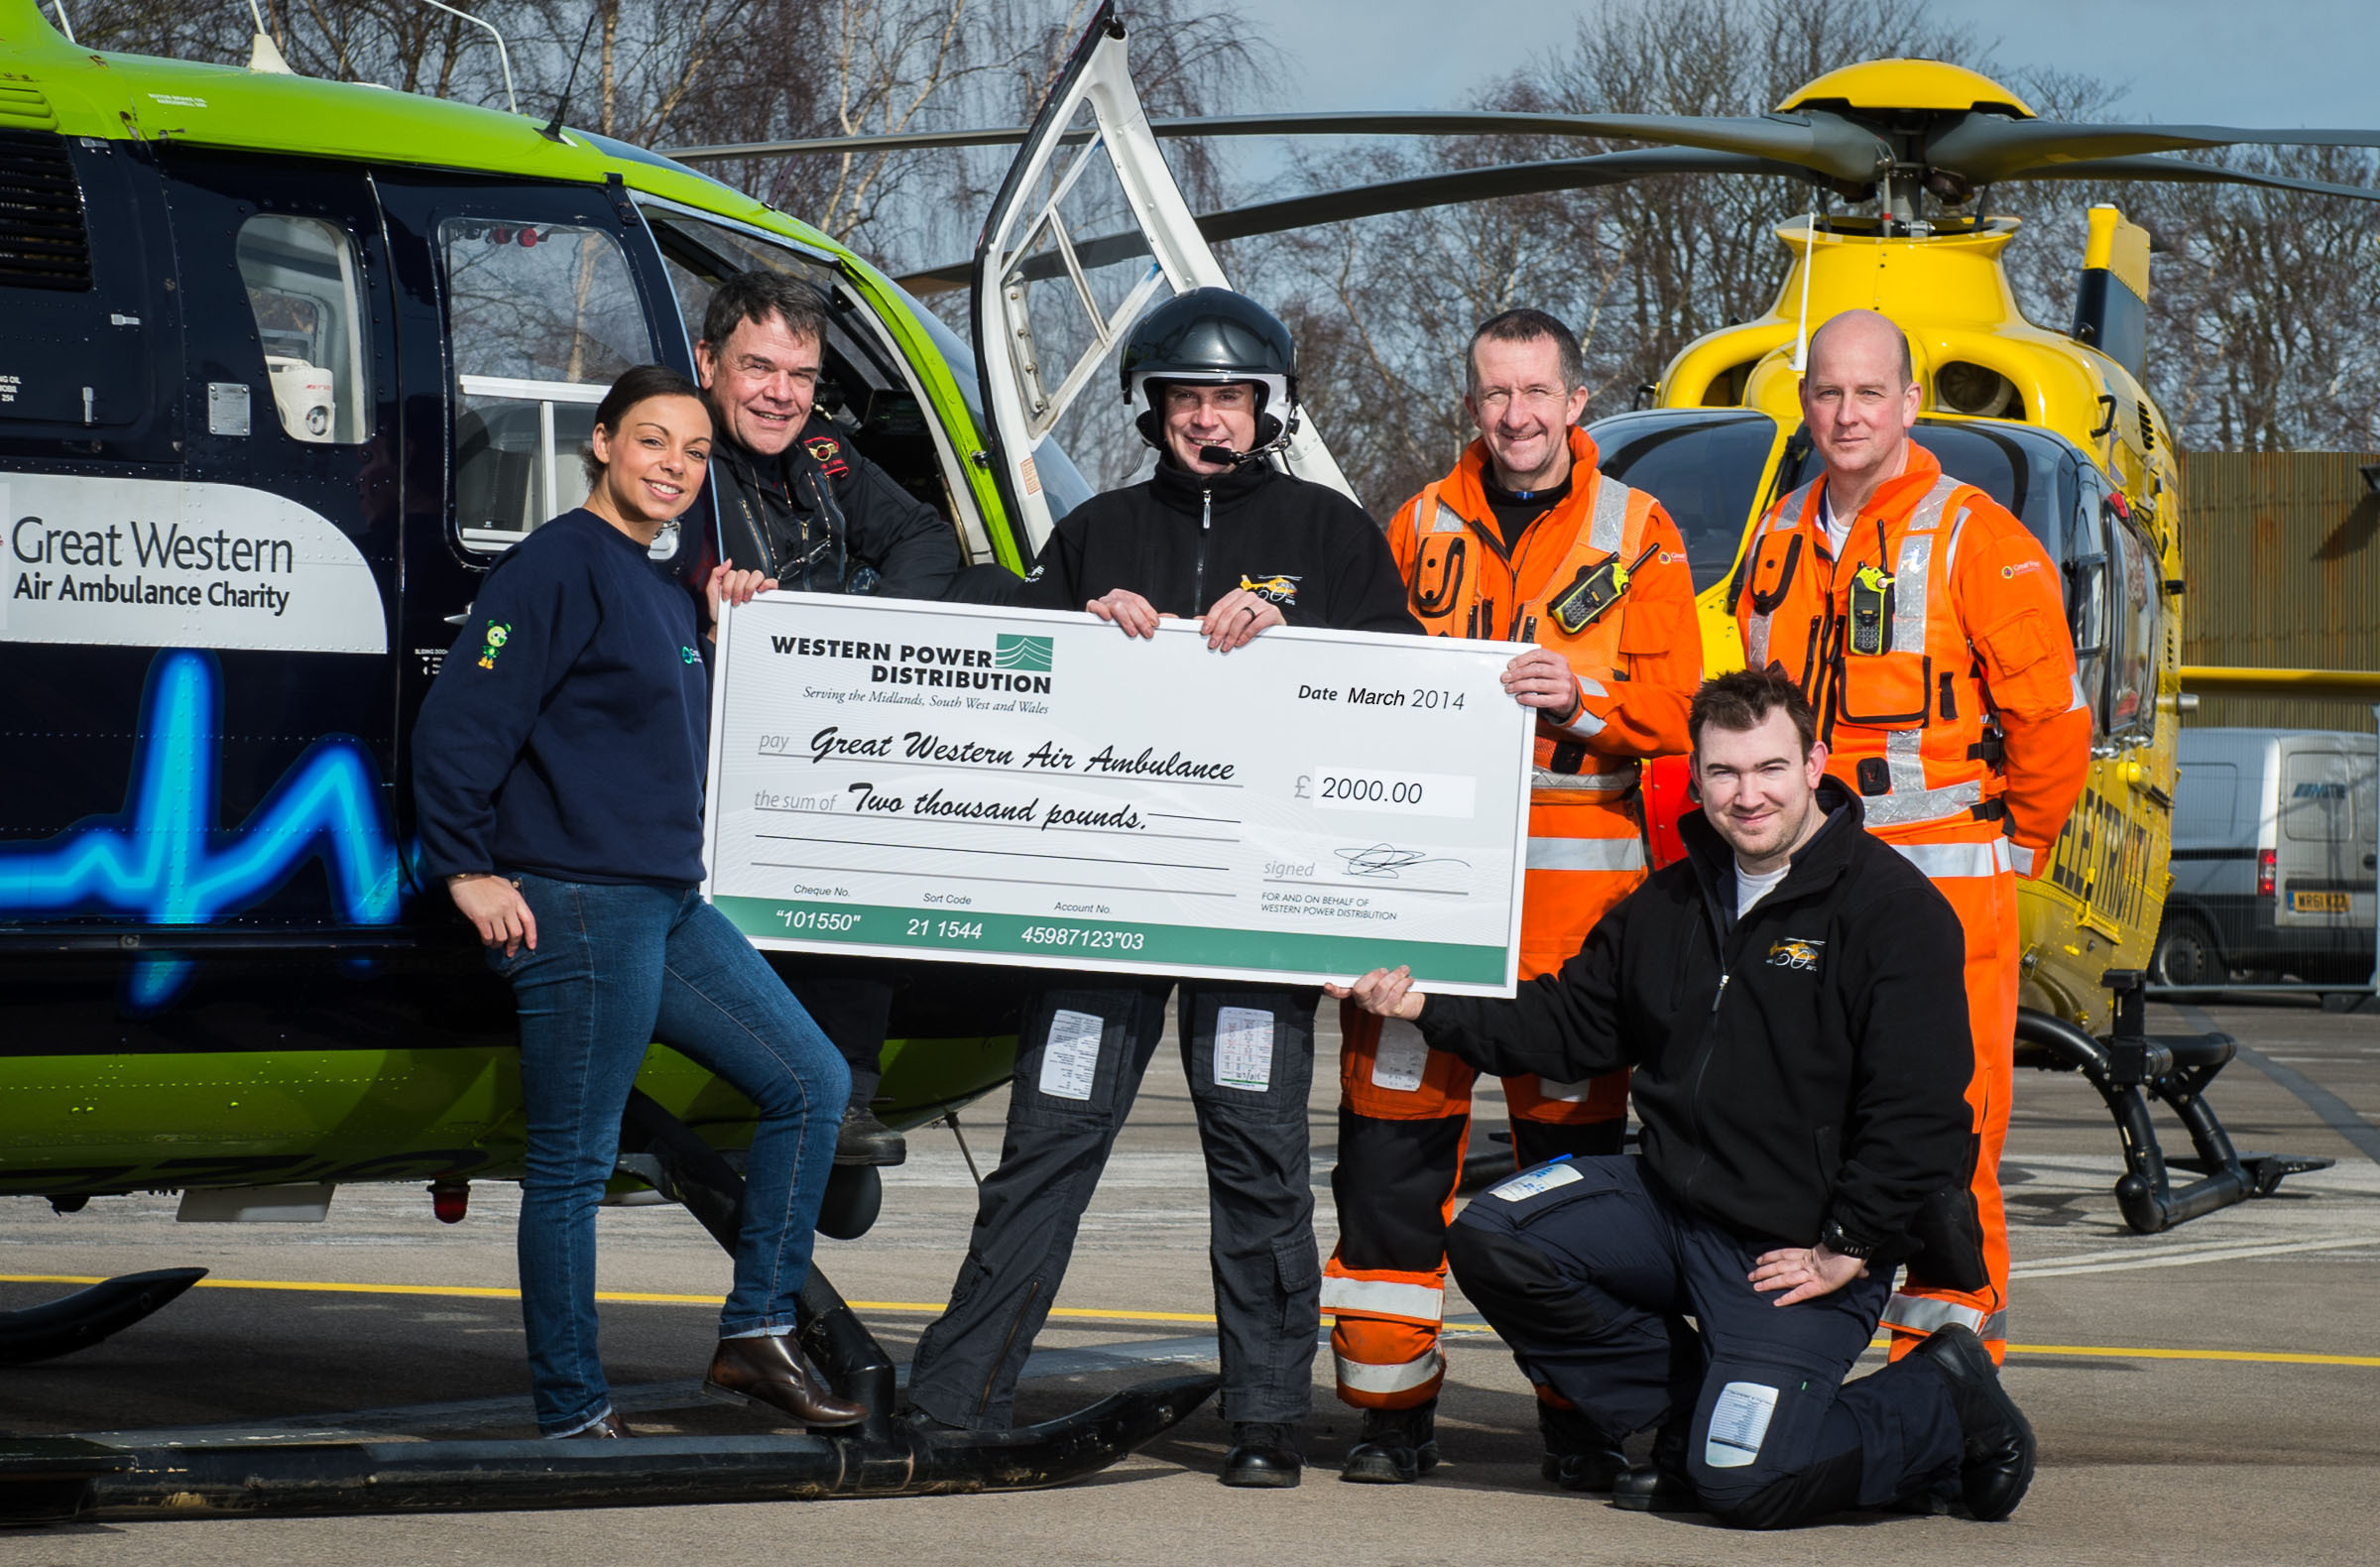 Special delivery for Great Western Air Ambulance